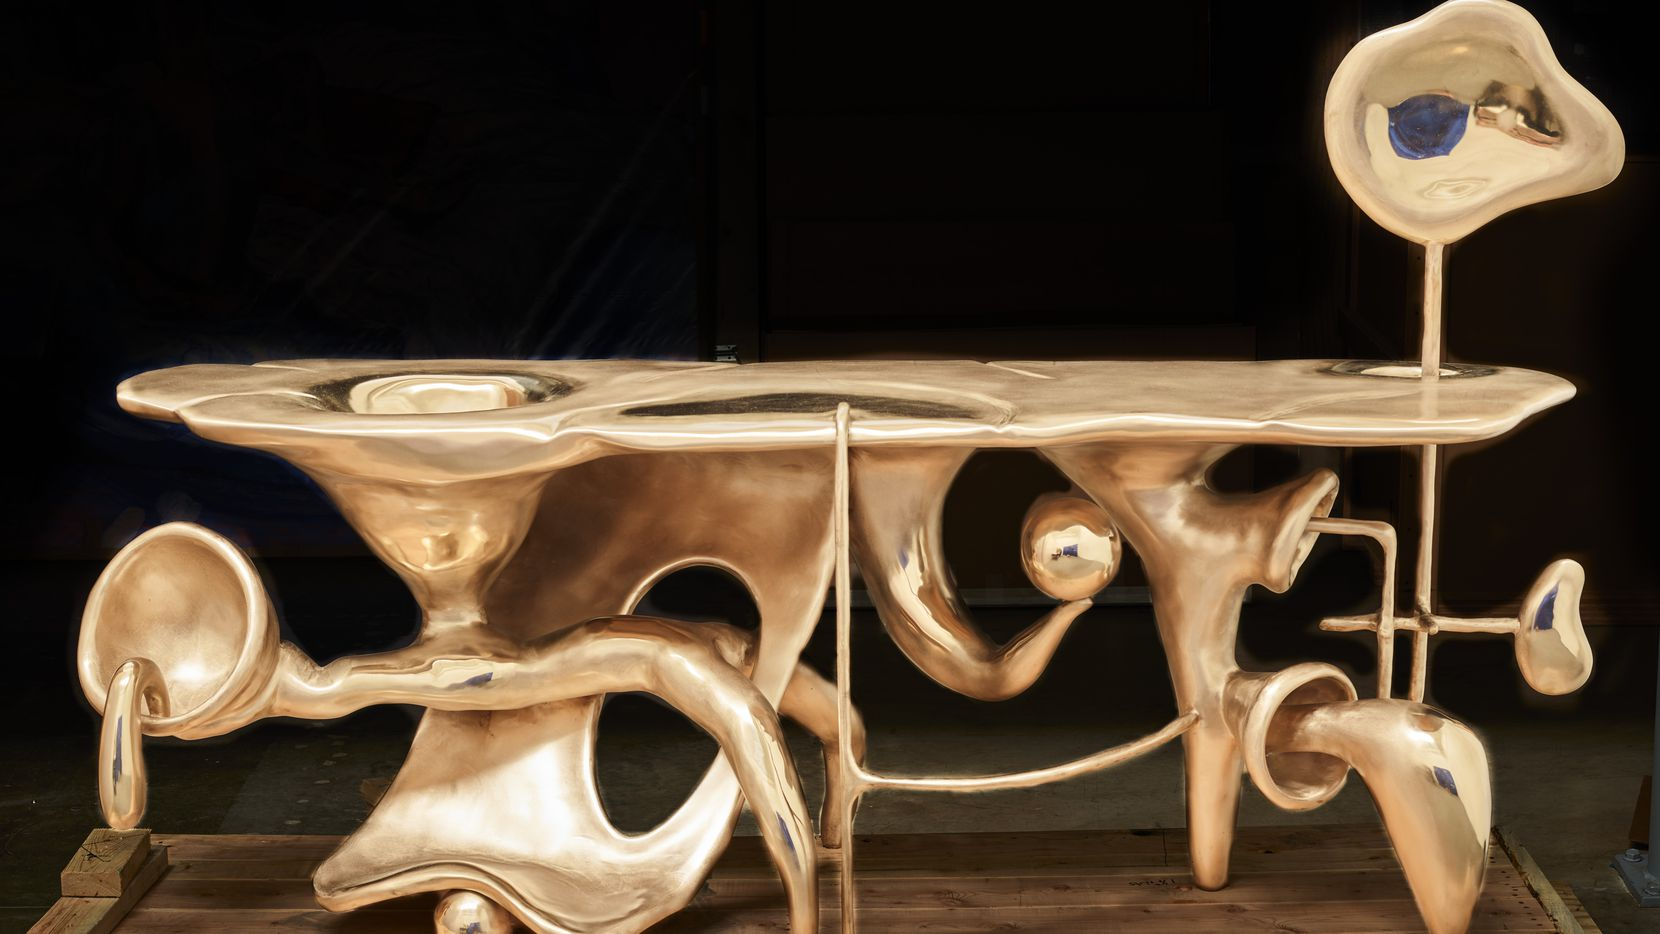 """Misha Kahn's madcap """"Tingle Tangle Mingle Mangle,"""" designed in 2017 and cast in bronze in 2019 by the Bollinger Atelier, is a Rube Goldbergian laboratory table where Duchamp and Giacometti's biomorphic surrealism collide with Dr. Seuss and the Flintstones."""